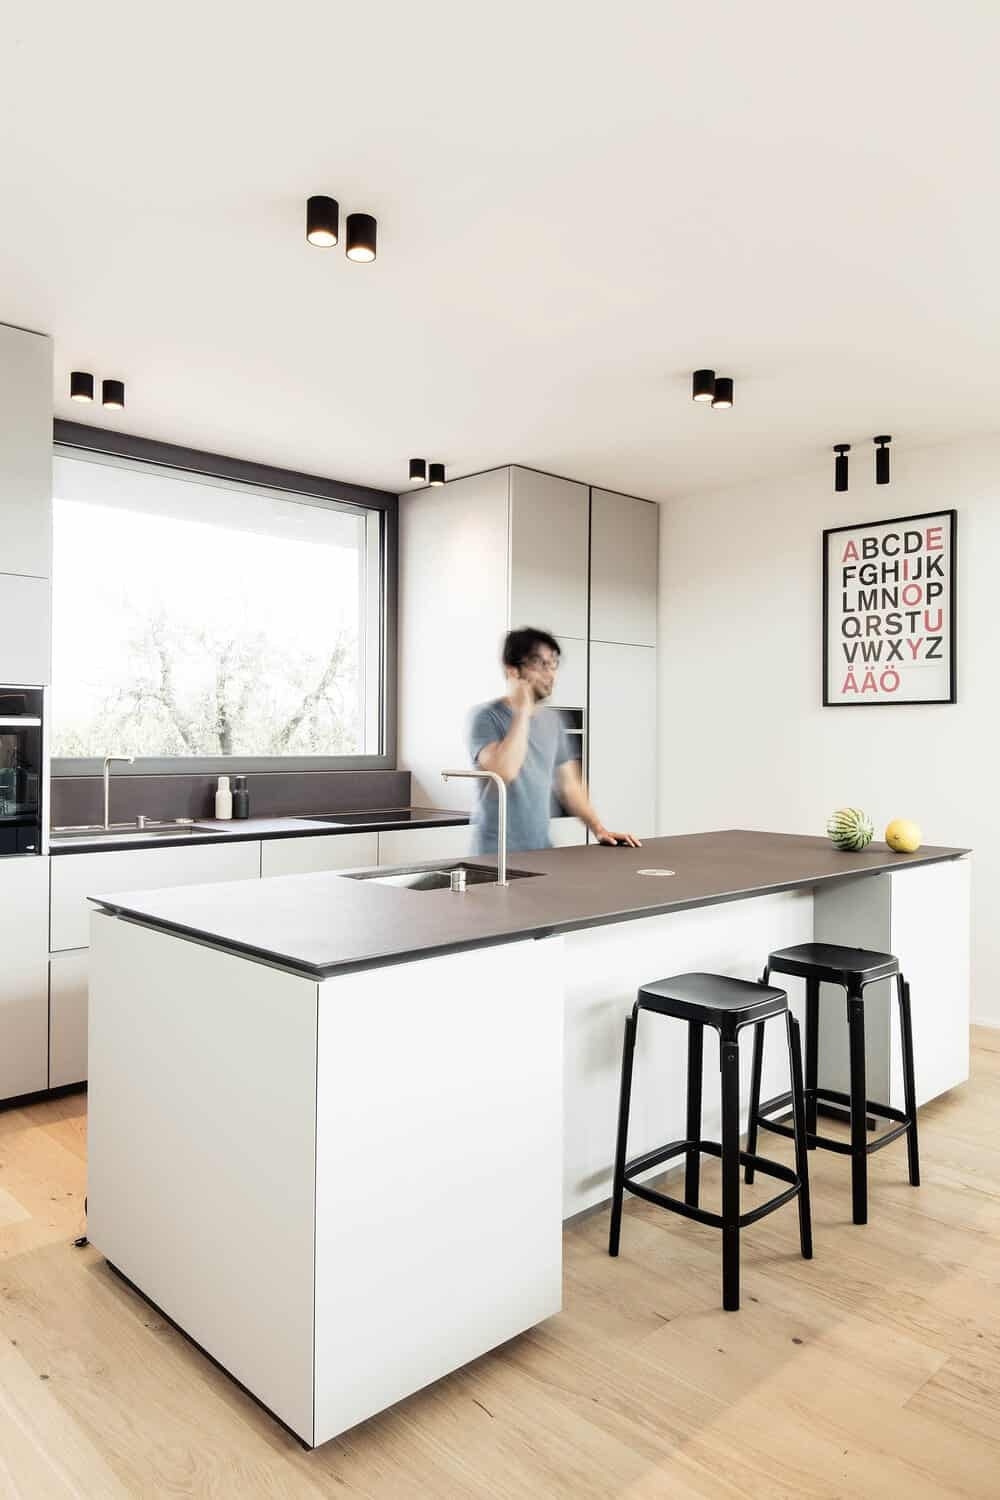 This is the kitchen with a large kitchen island that matches the bright walls that contrast the dark countertops.